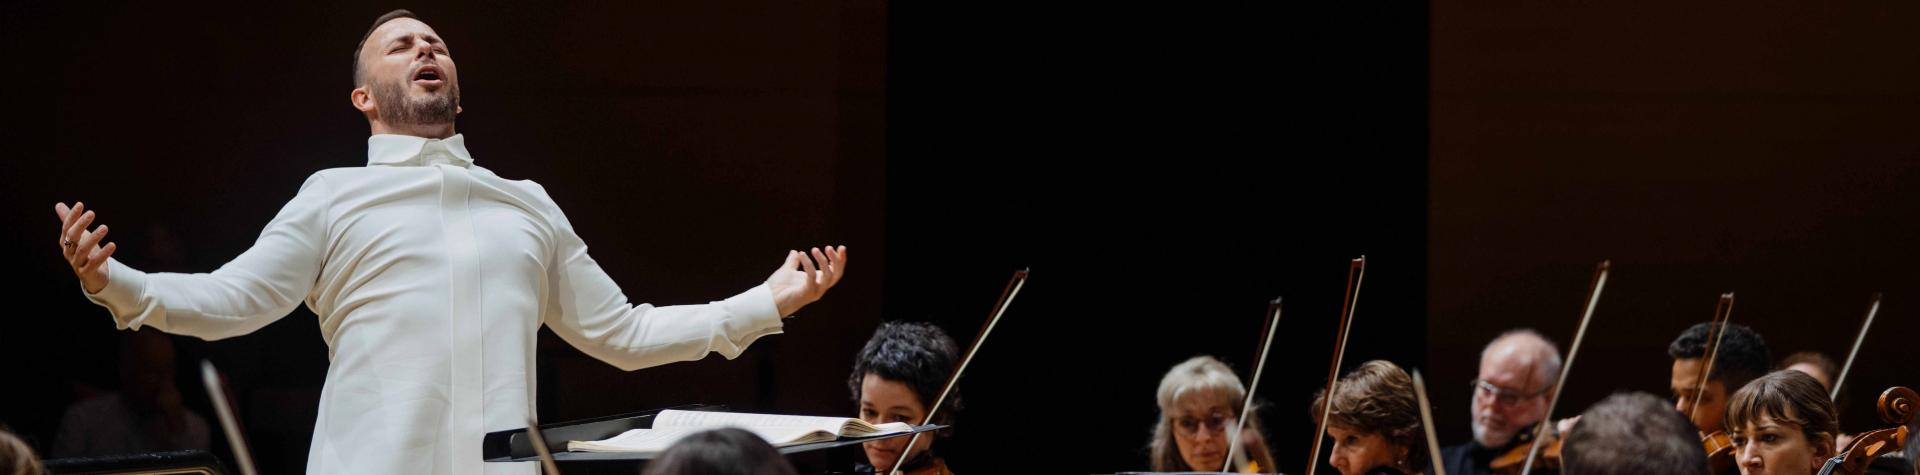 Yannick Nézet-Séguin conducting in Koerner Hall (photo courtesy of Orchestre Métropolitain)